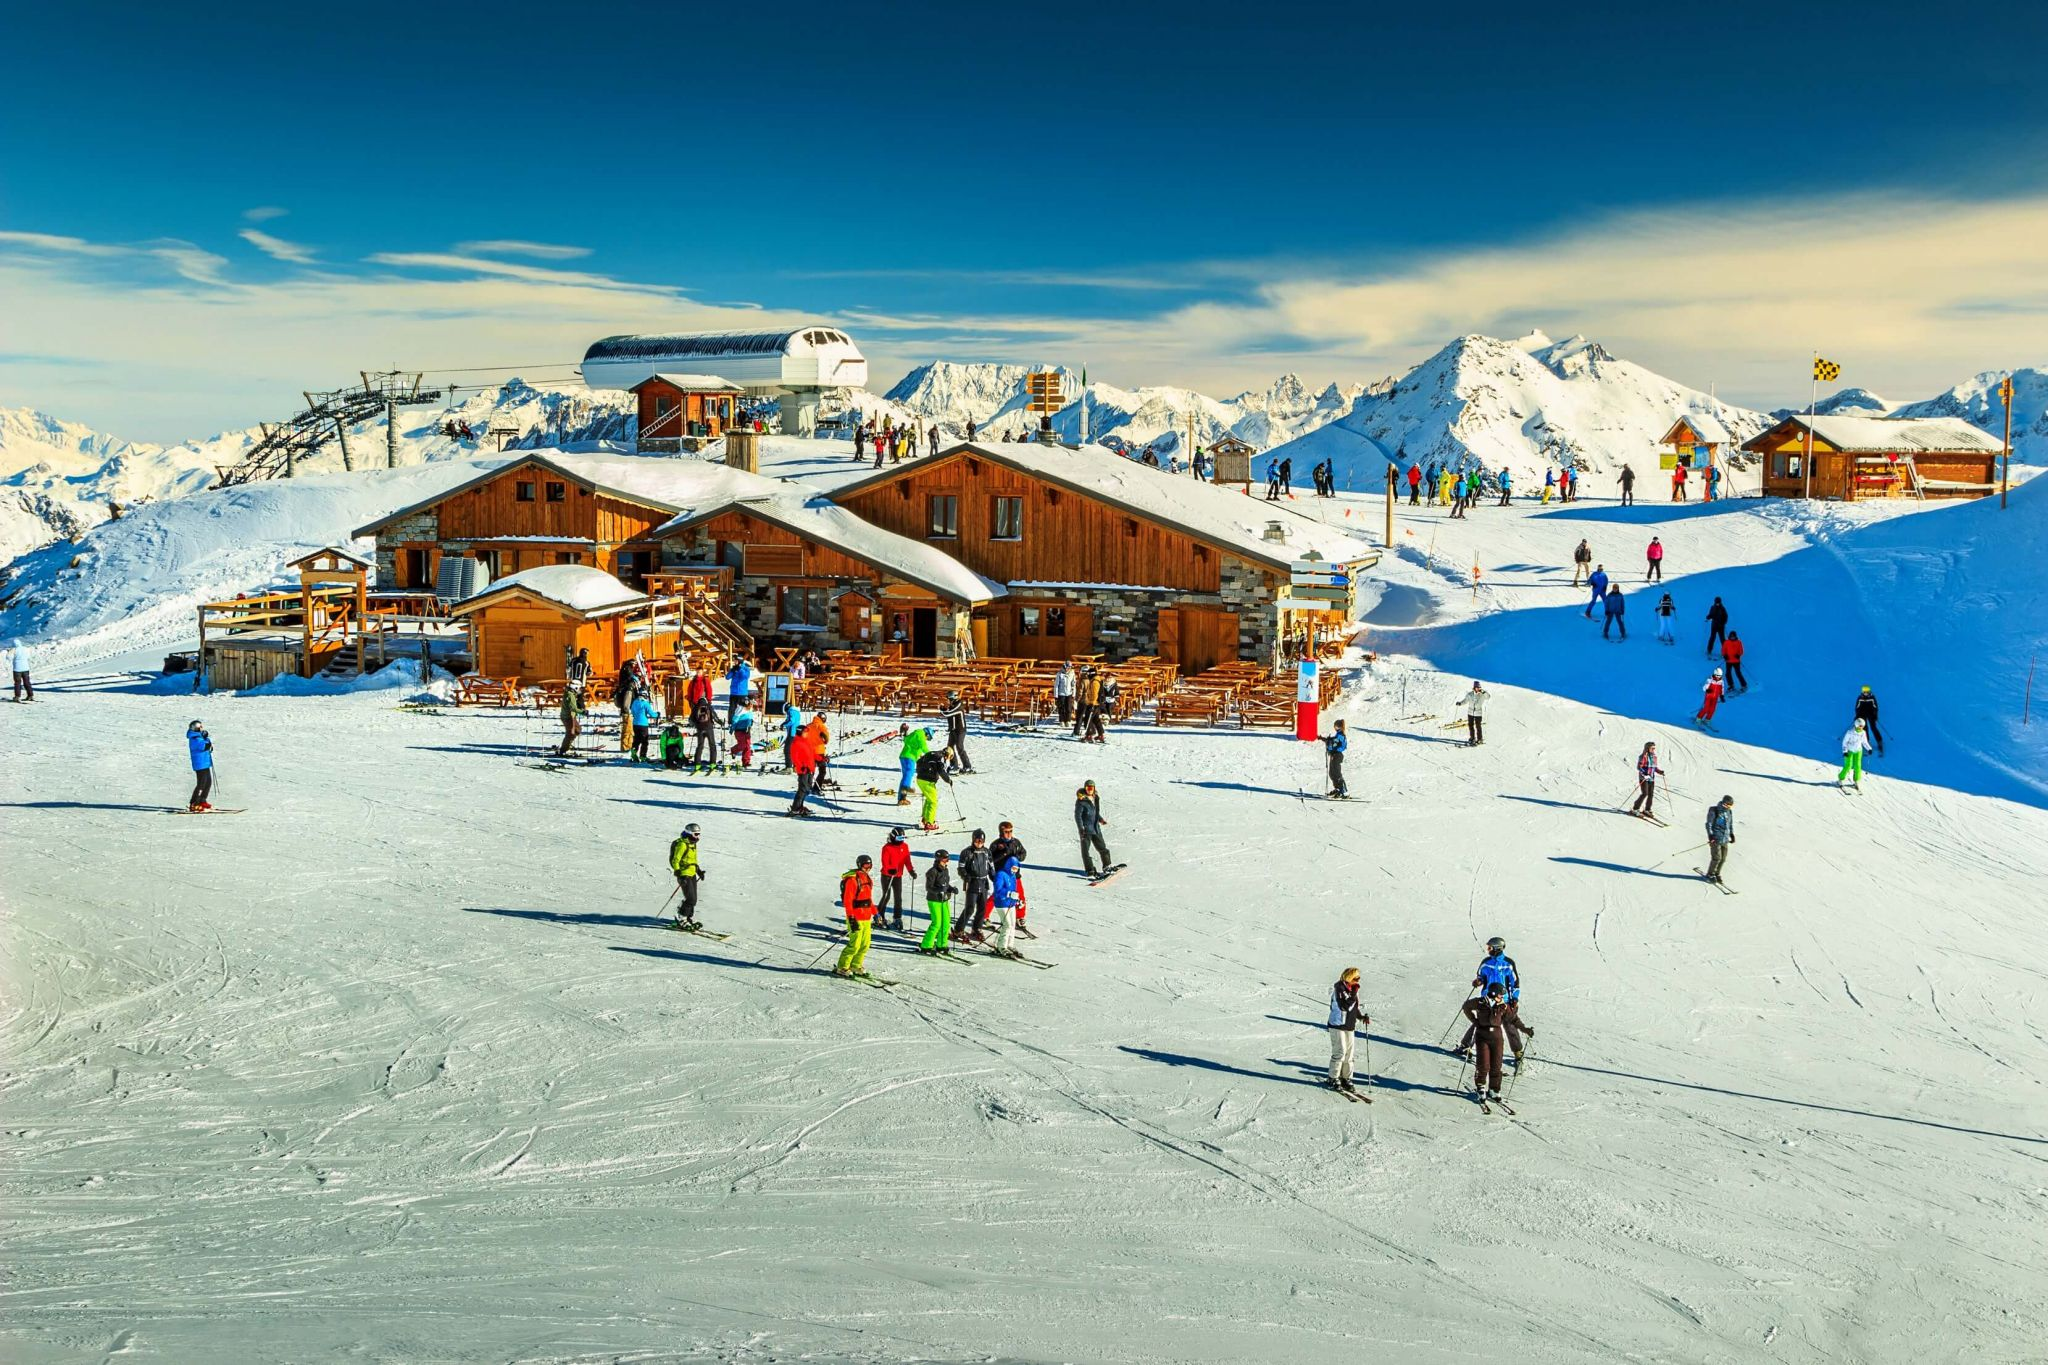 ski holiday with kids - Les Menuires